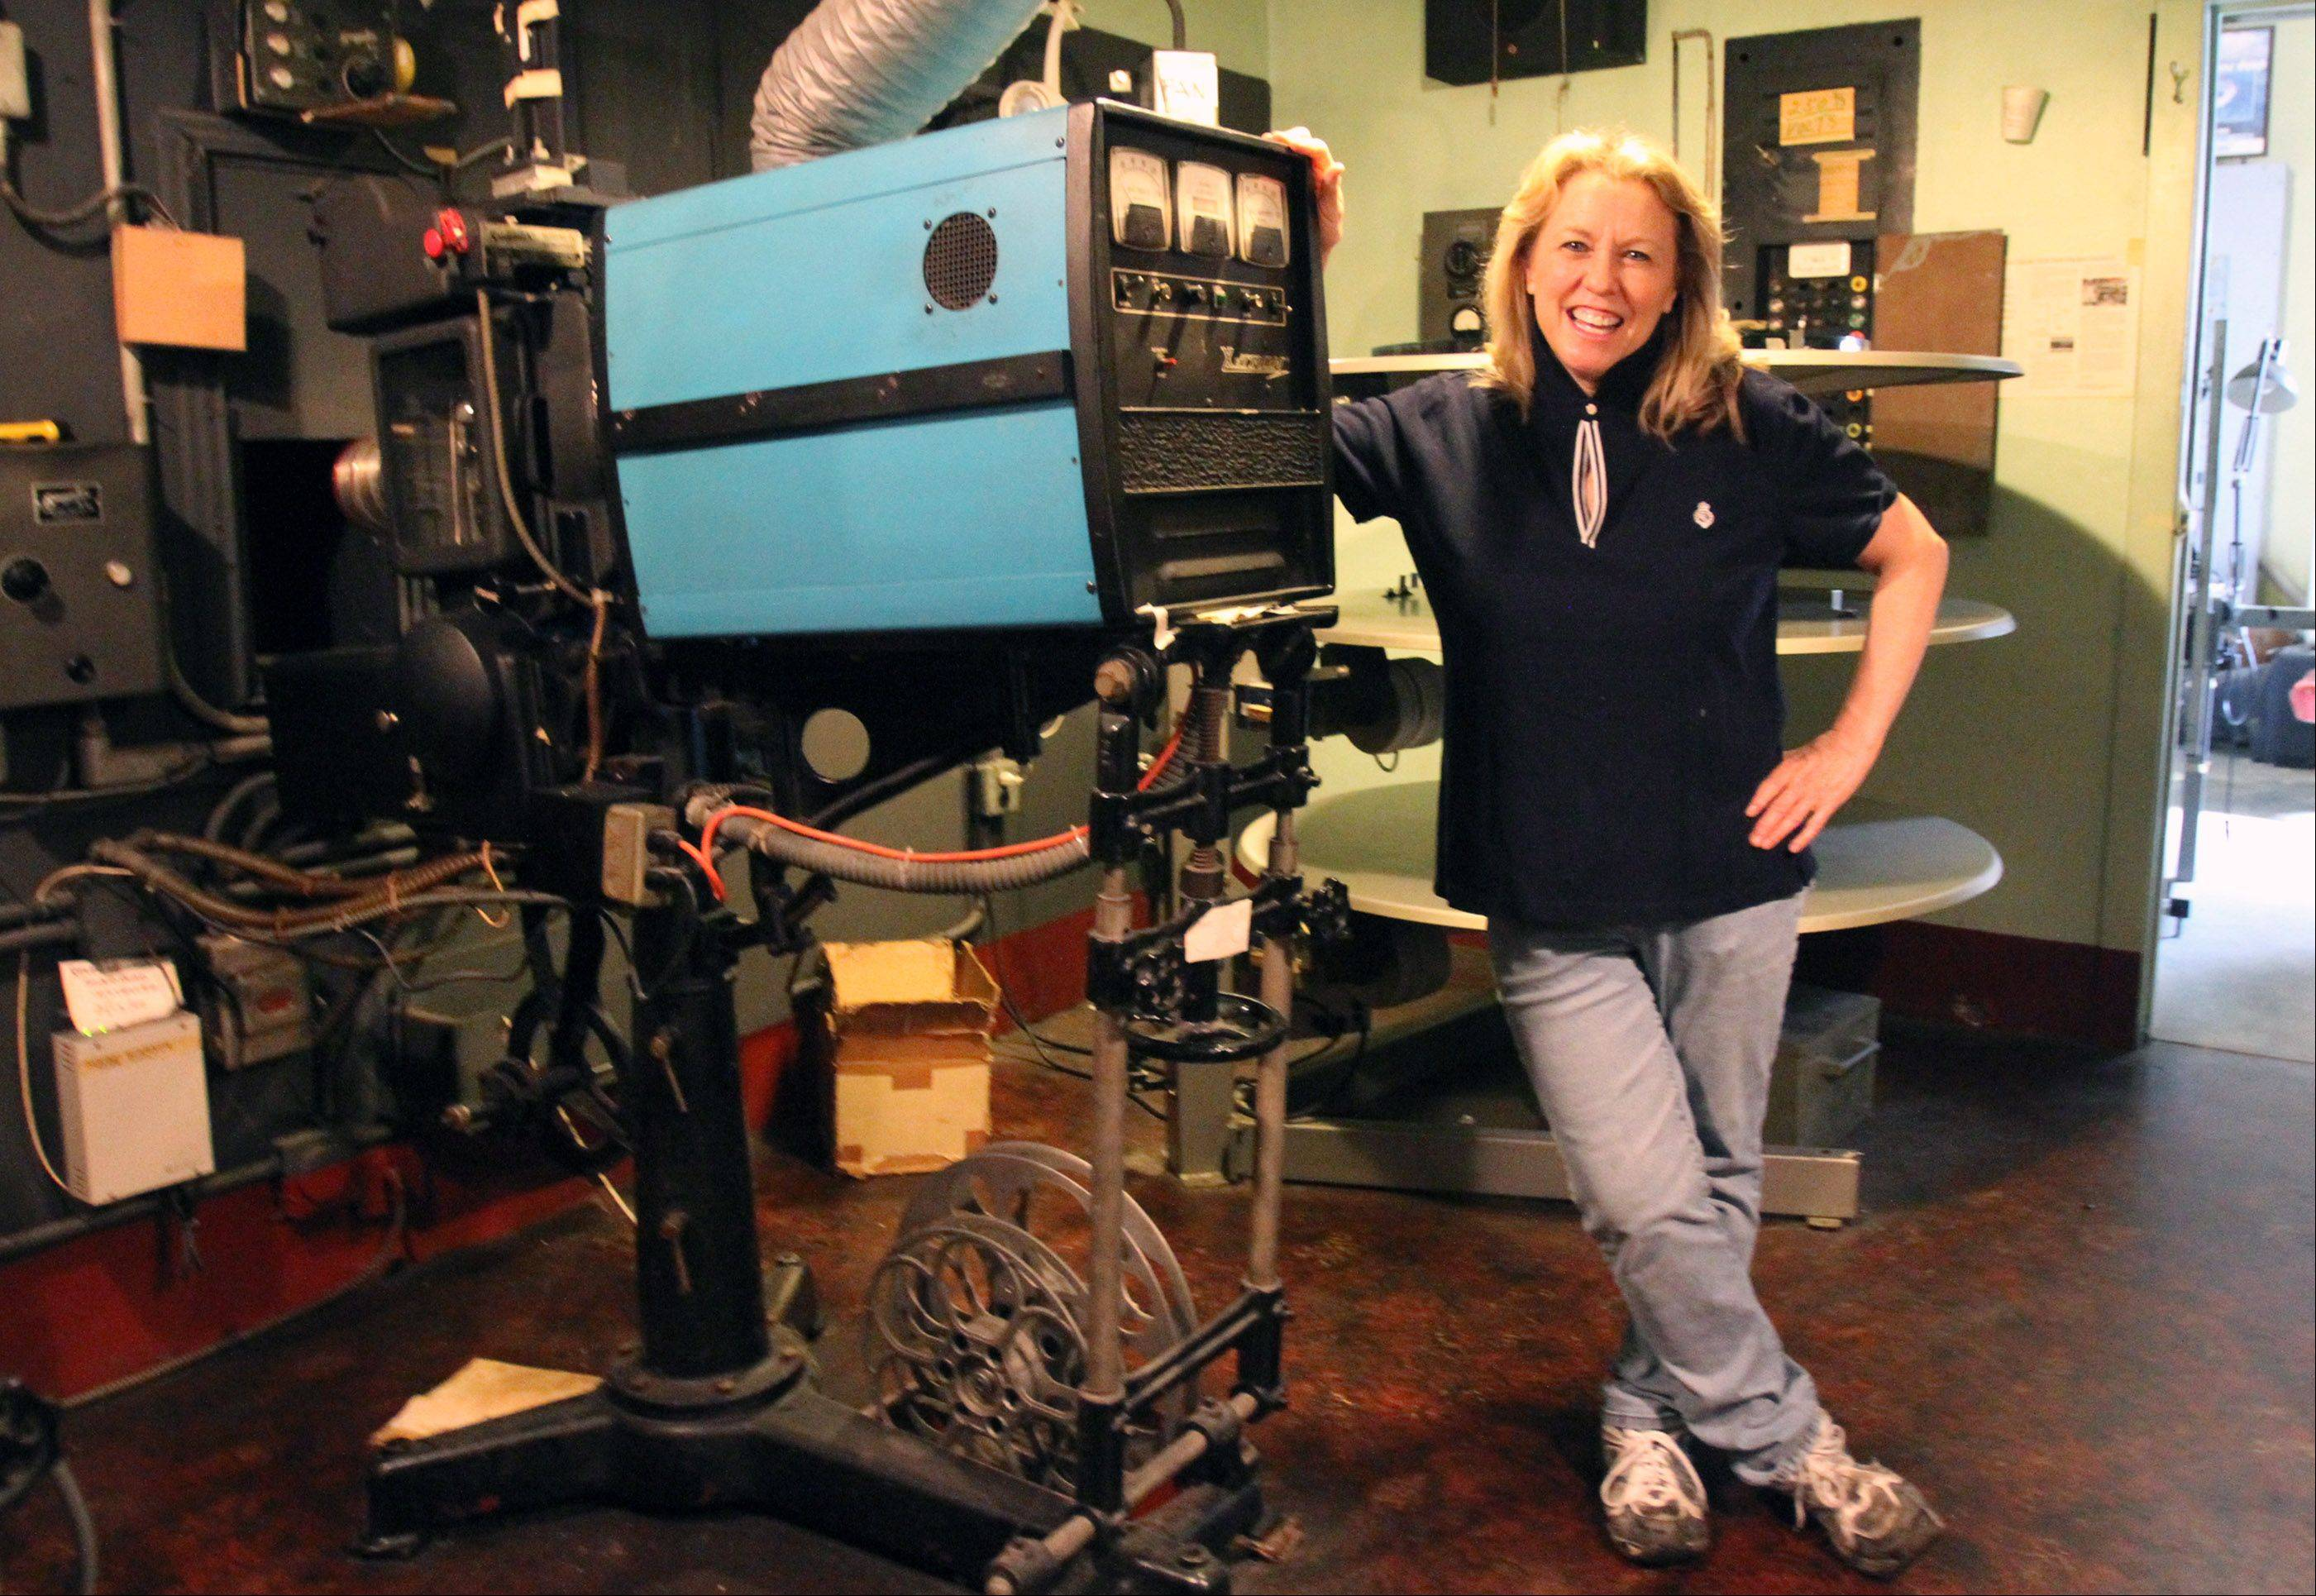 The Catlow theater co-owner Roberta Rapata in the film projection room with the 10940-50s Simplex XL film projector that is being used at the Barrington theater but doomed to be replaced by a digital machine.